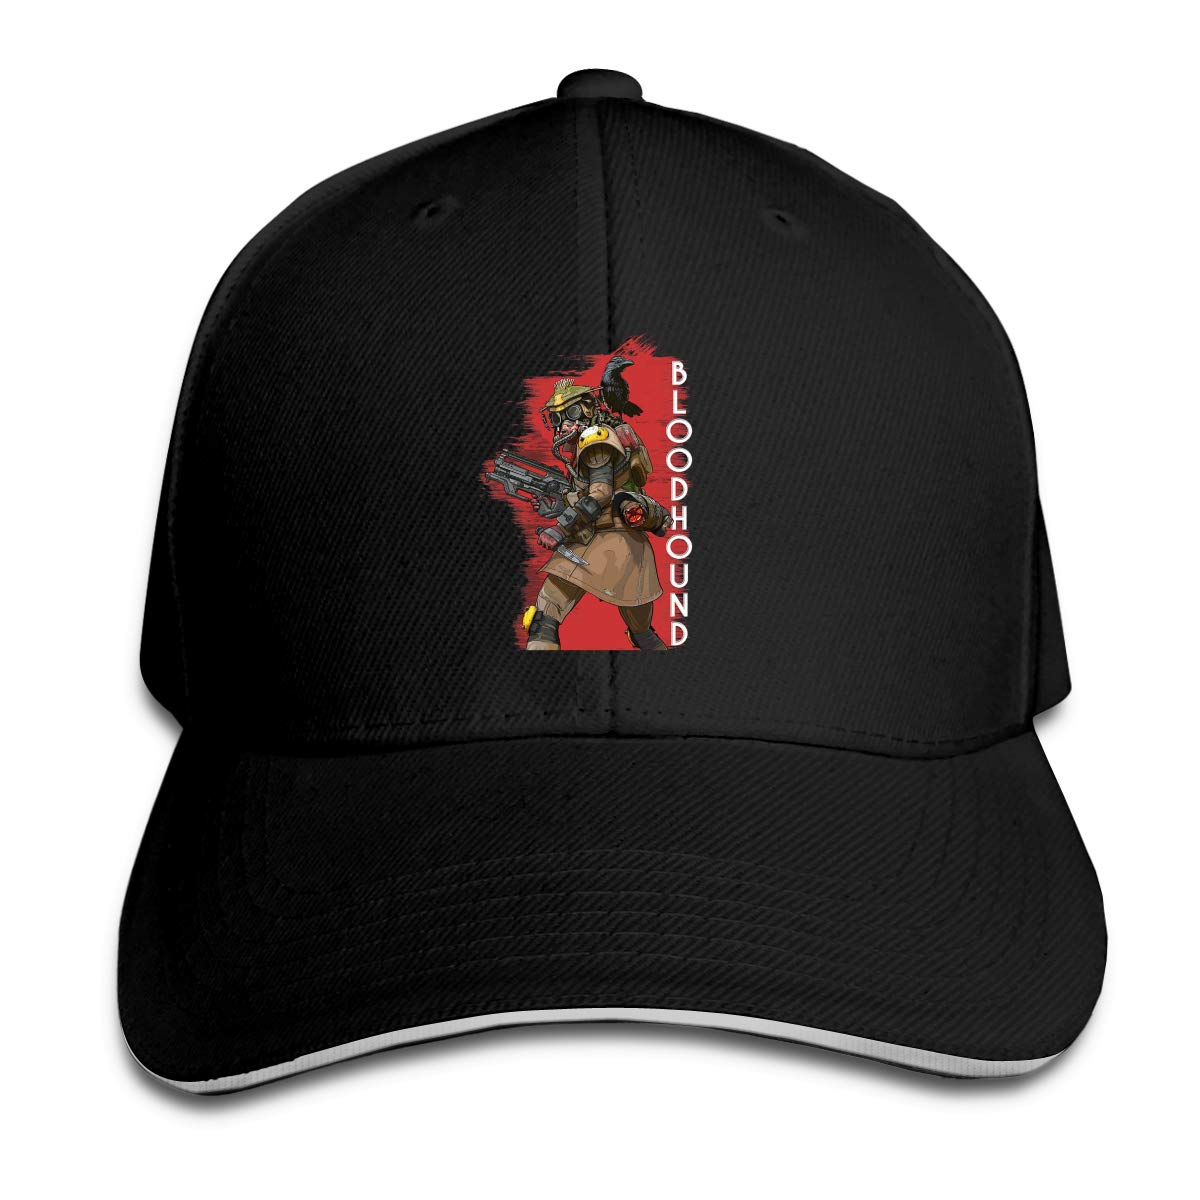 Bloodhound Adjustable Sports Hats Sun Hat for Men and Women Apex Legends